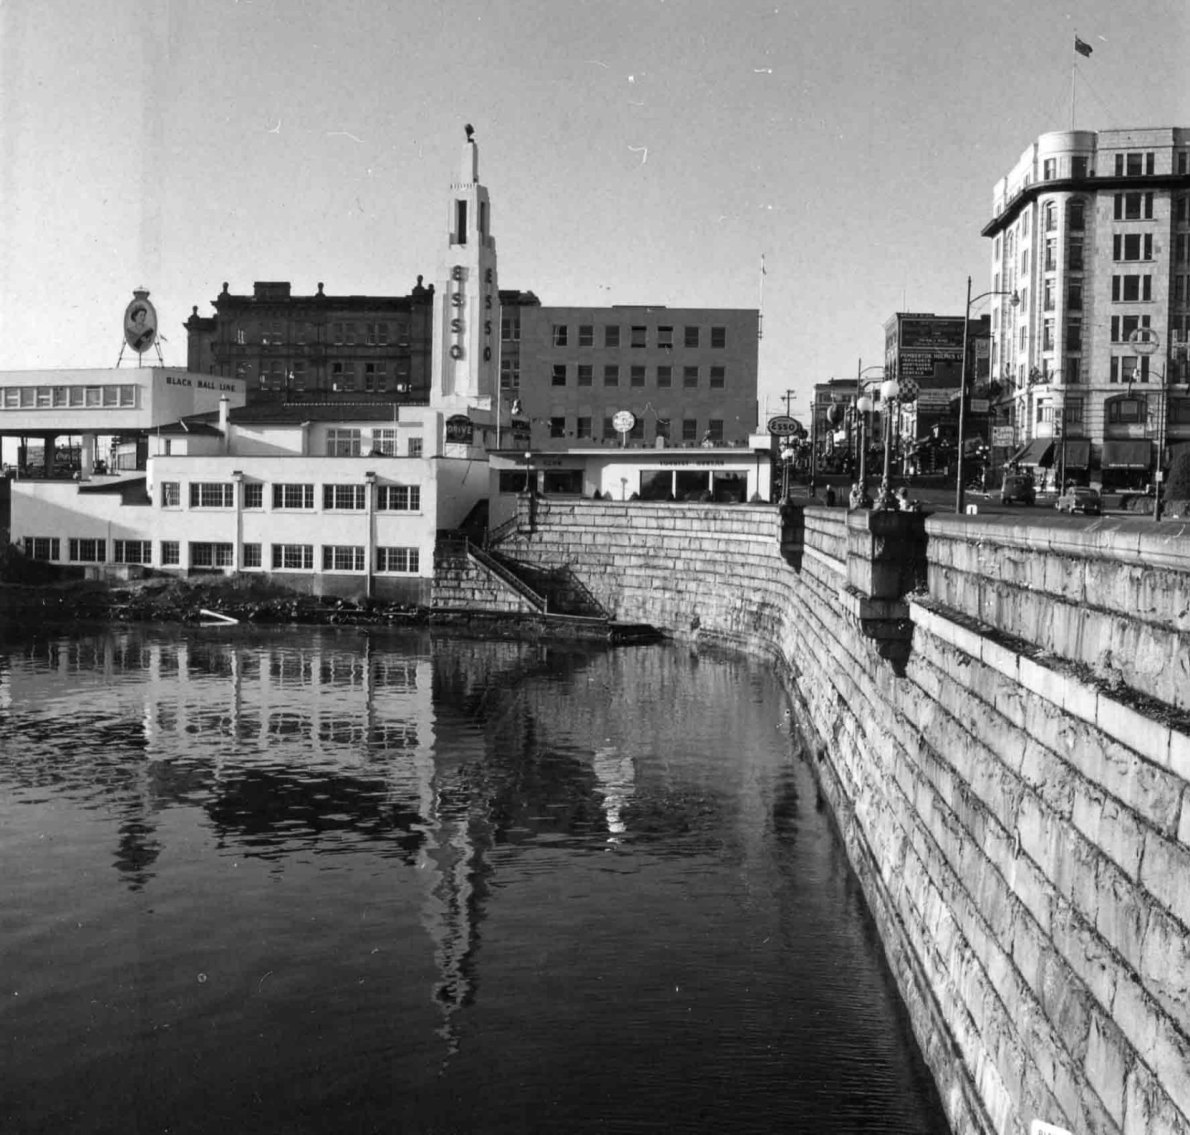 812 Wharf Street in 1958. Note the adjacent Black Ball Line ferry terminal (photo courtesy of Glenbow Museum, used with permission)